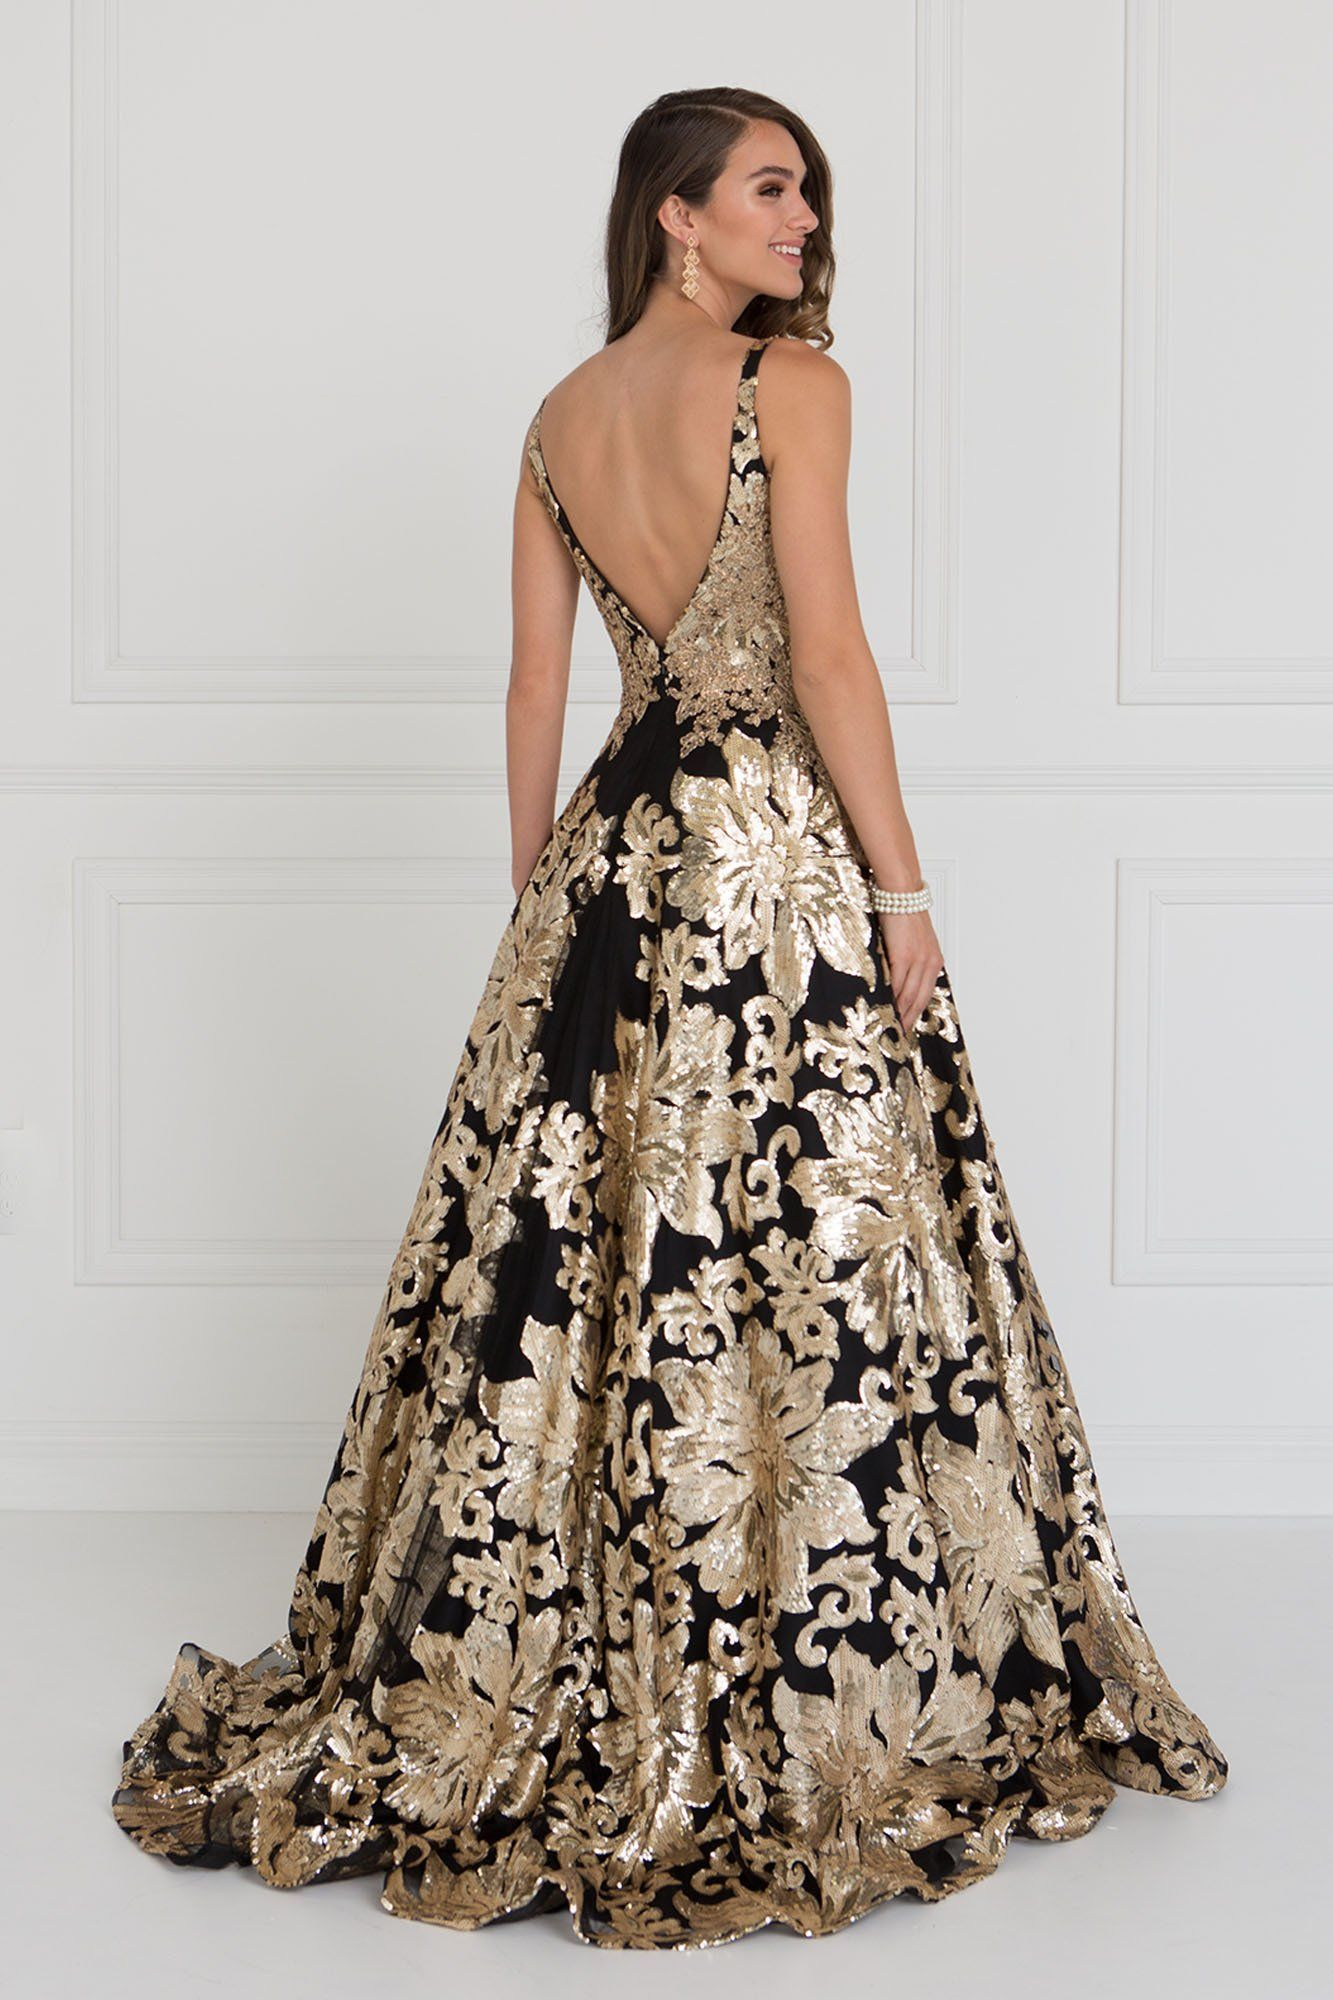 d5cb628aa243d GLS 1511 - Lace Applique A-Line V-Neck Plunging Back Ball Gown in ...